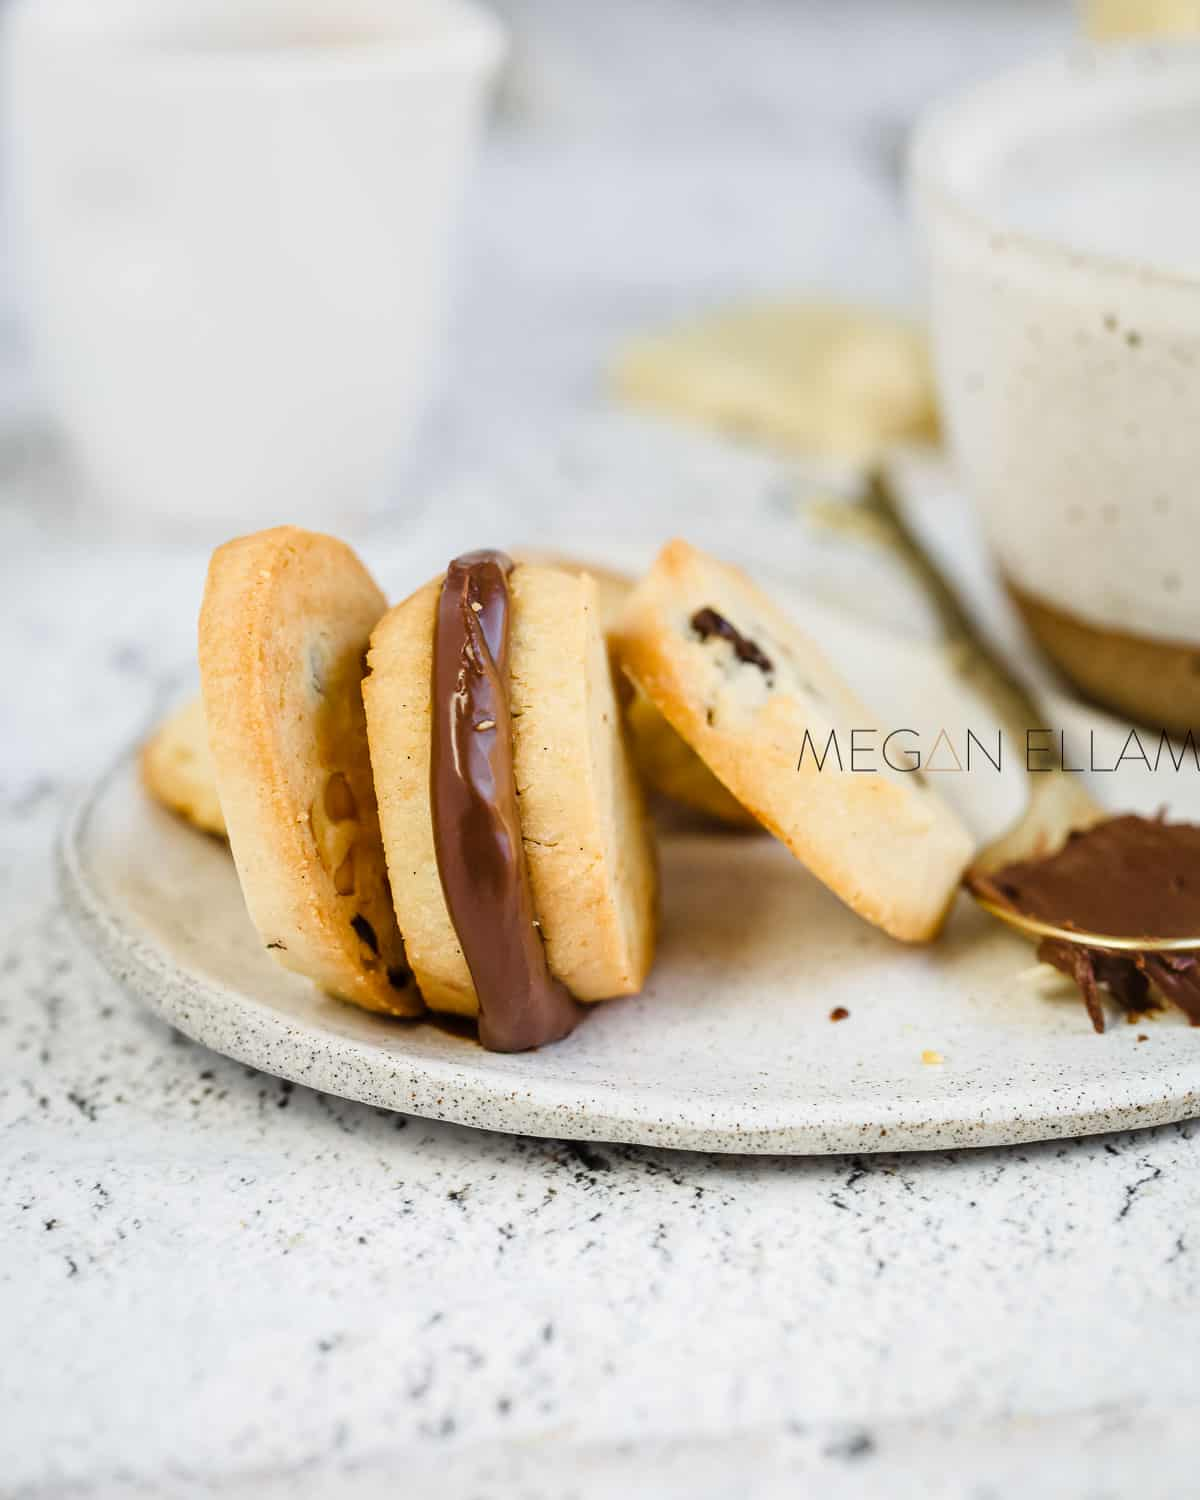 Choc chip keto cookies on a plate.